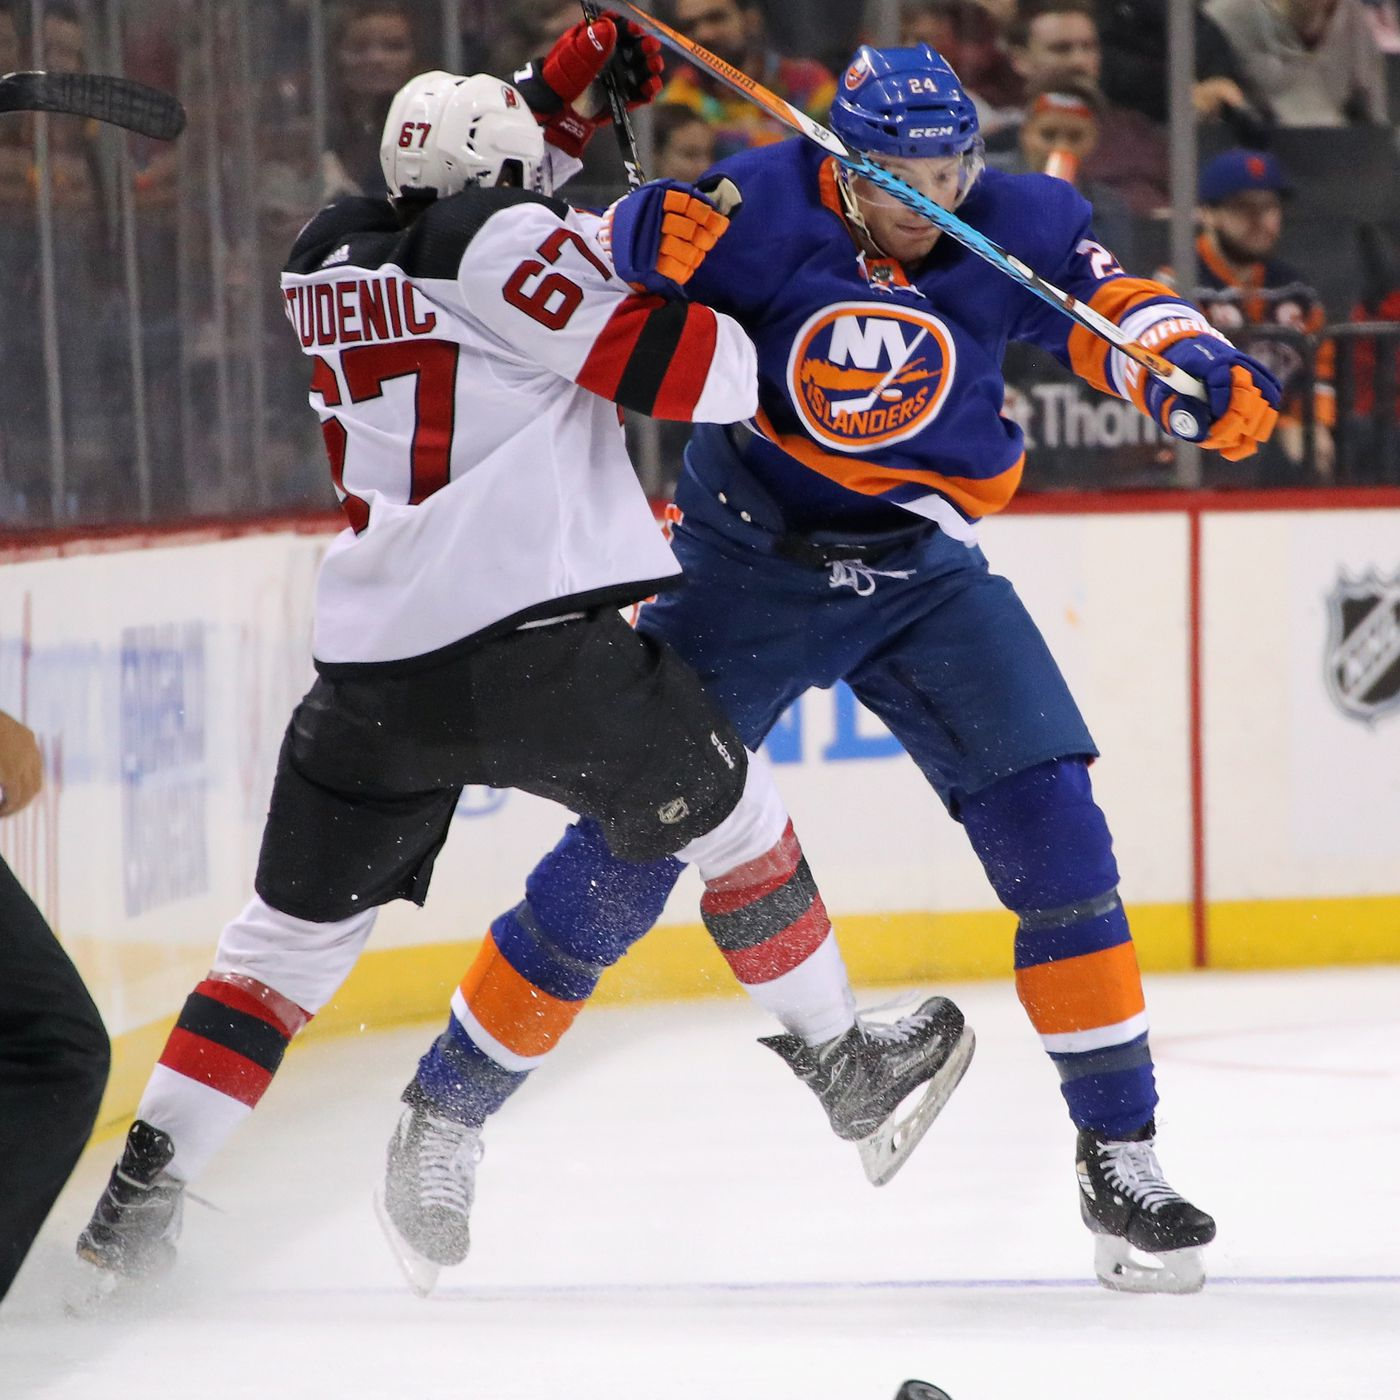 Penalties Plagued New Jersey Devils in Preseason Loss to New York Islanders  - All About The Jersey dba2e8cde